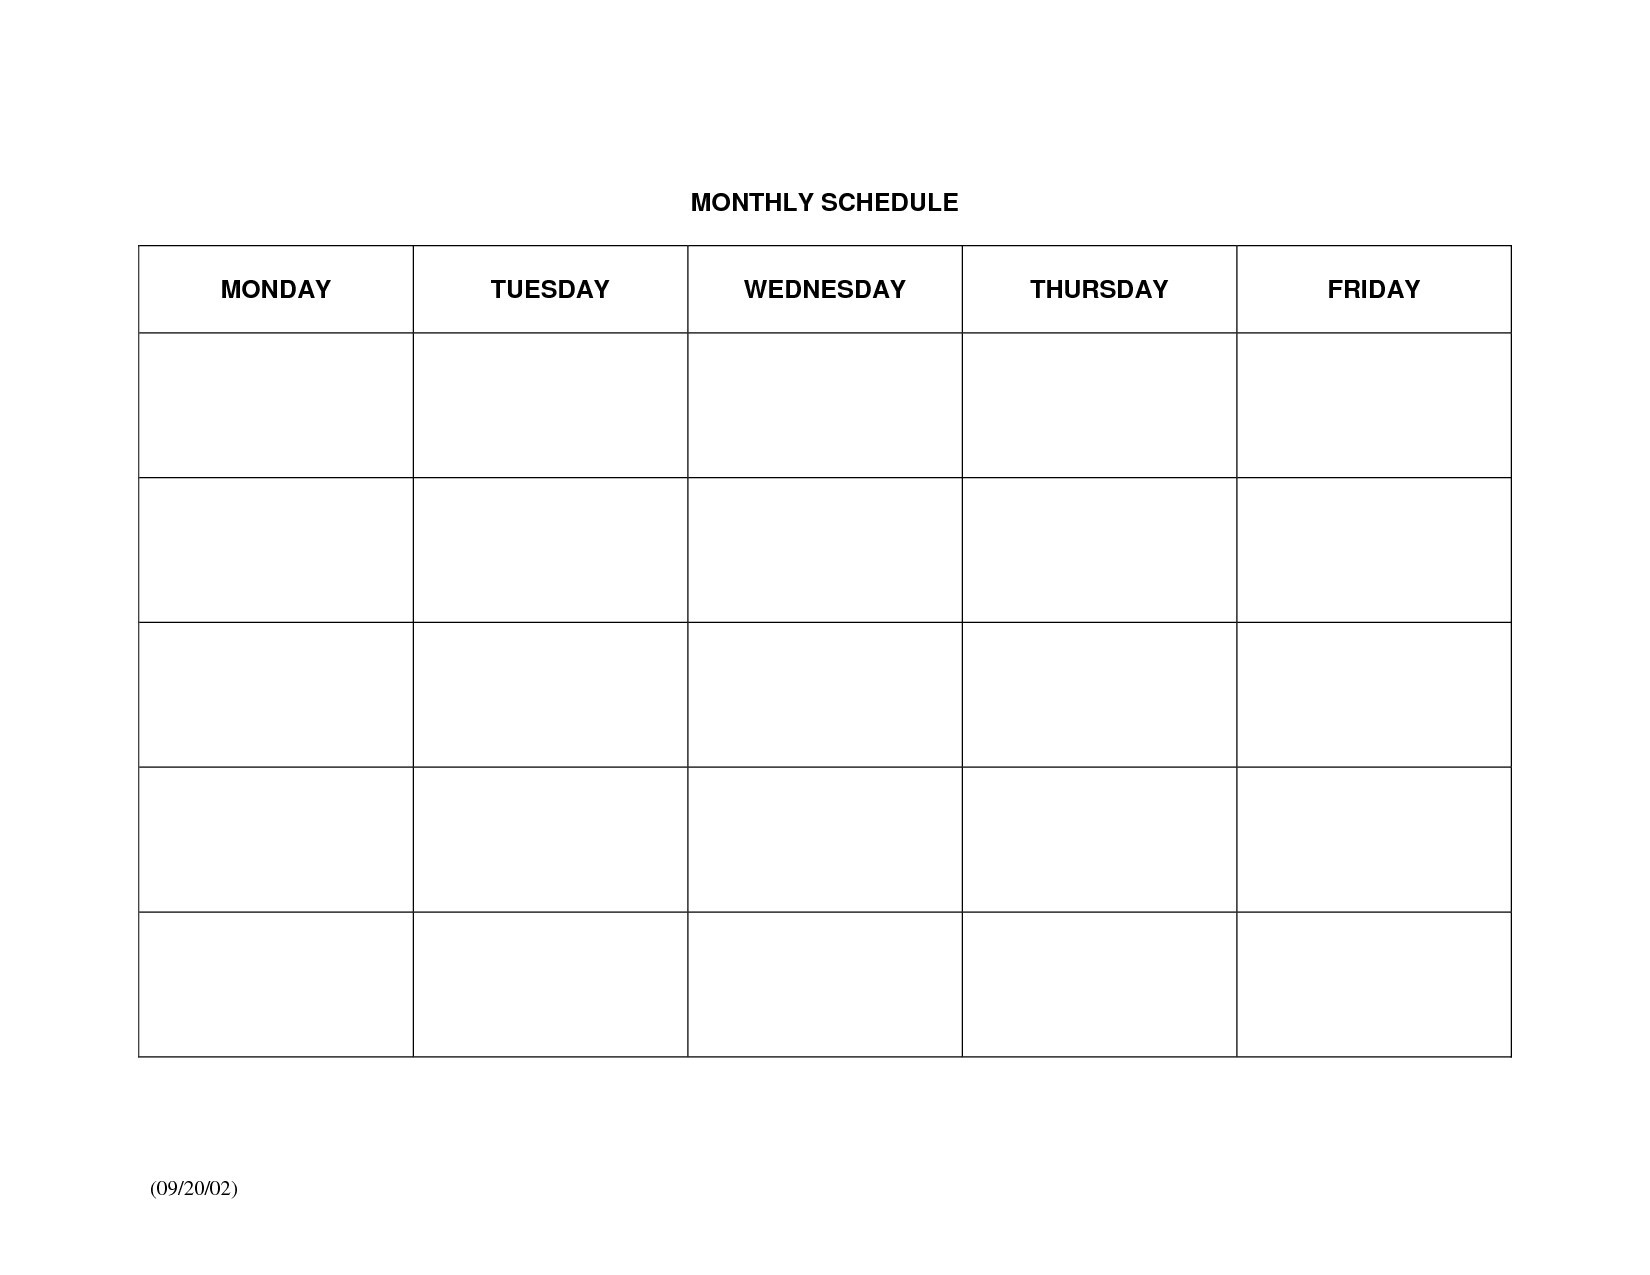 Blank Chart Template For Teachers Generation Blank Chart Template intended for Blank Calendar Chart For Classrooms